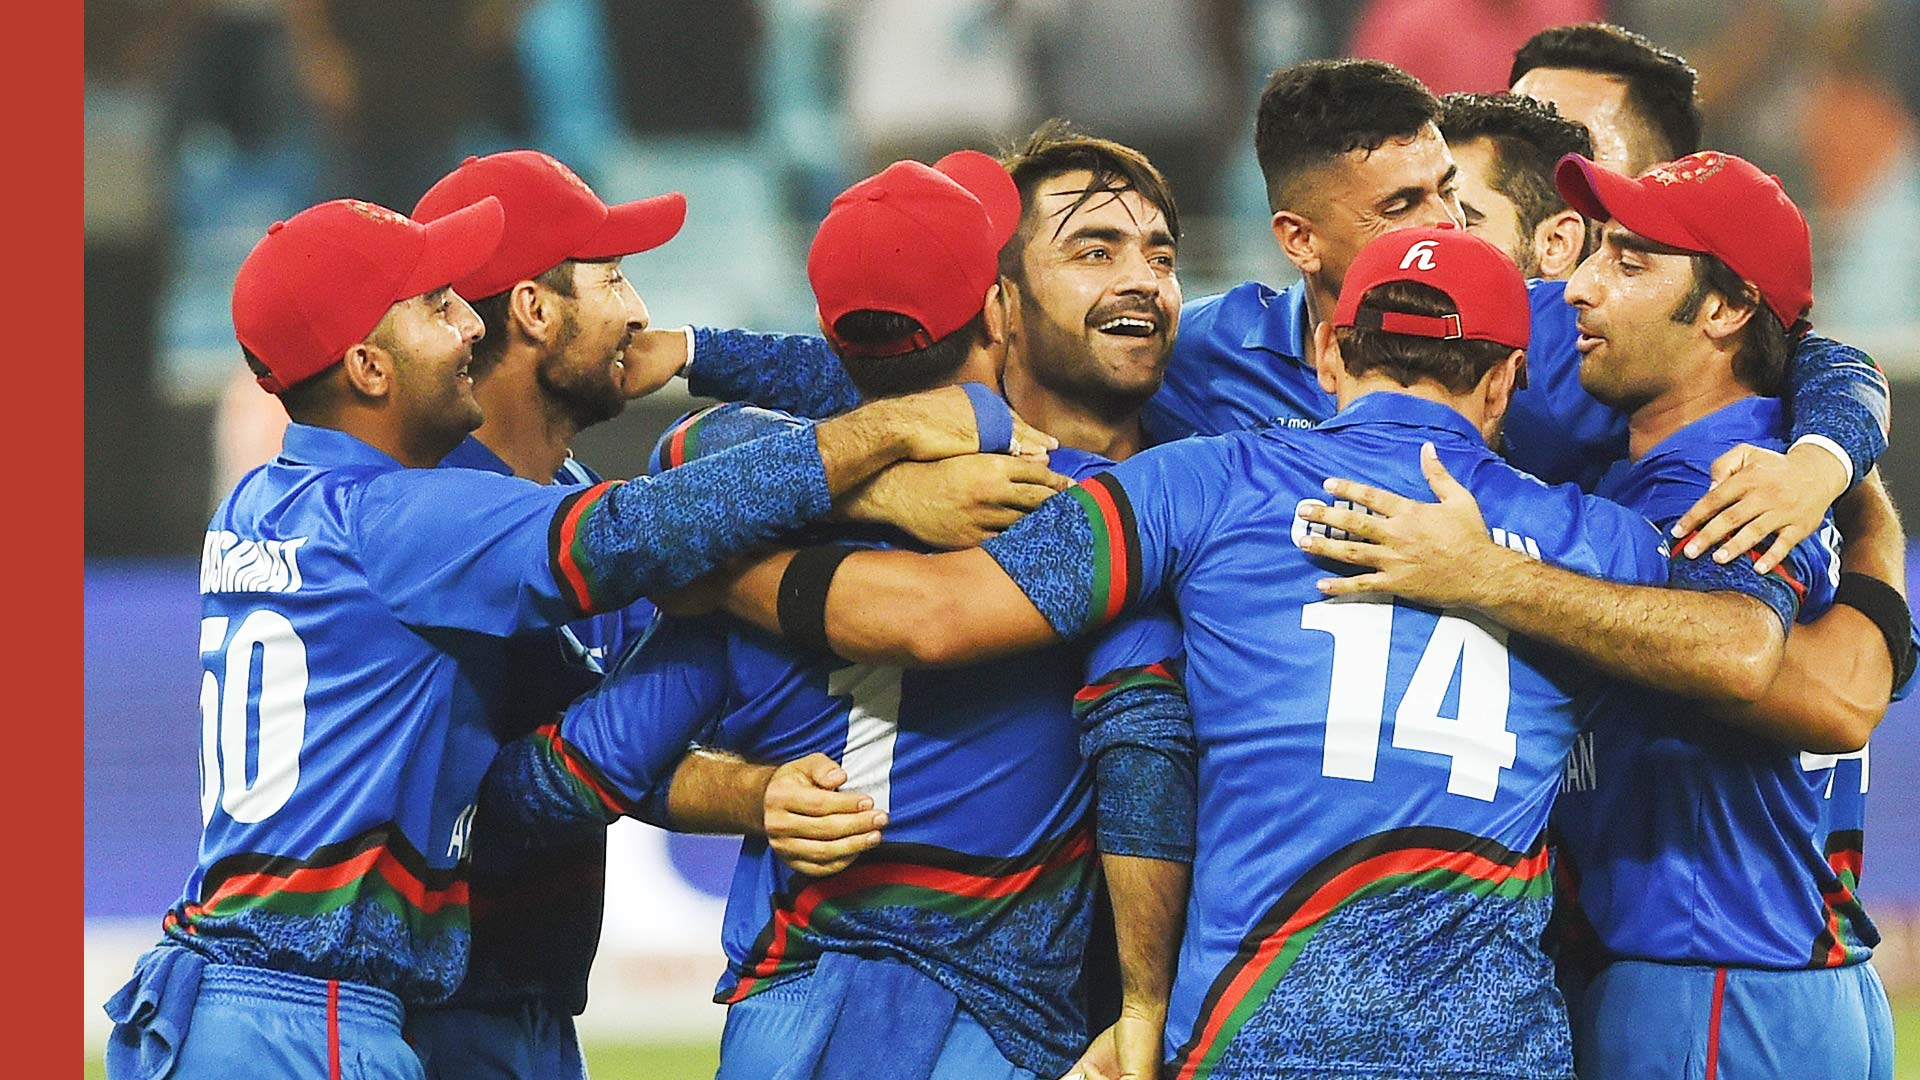 Afghanistan, the underdogs of the world cup, have managed to win the hearts of many cricket fans.